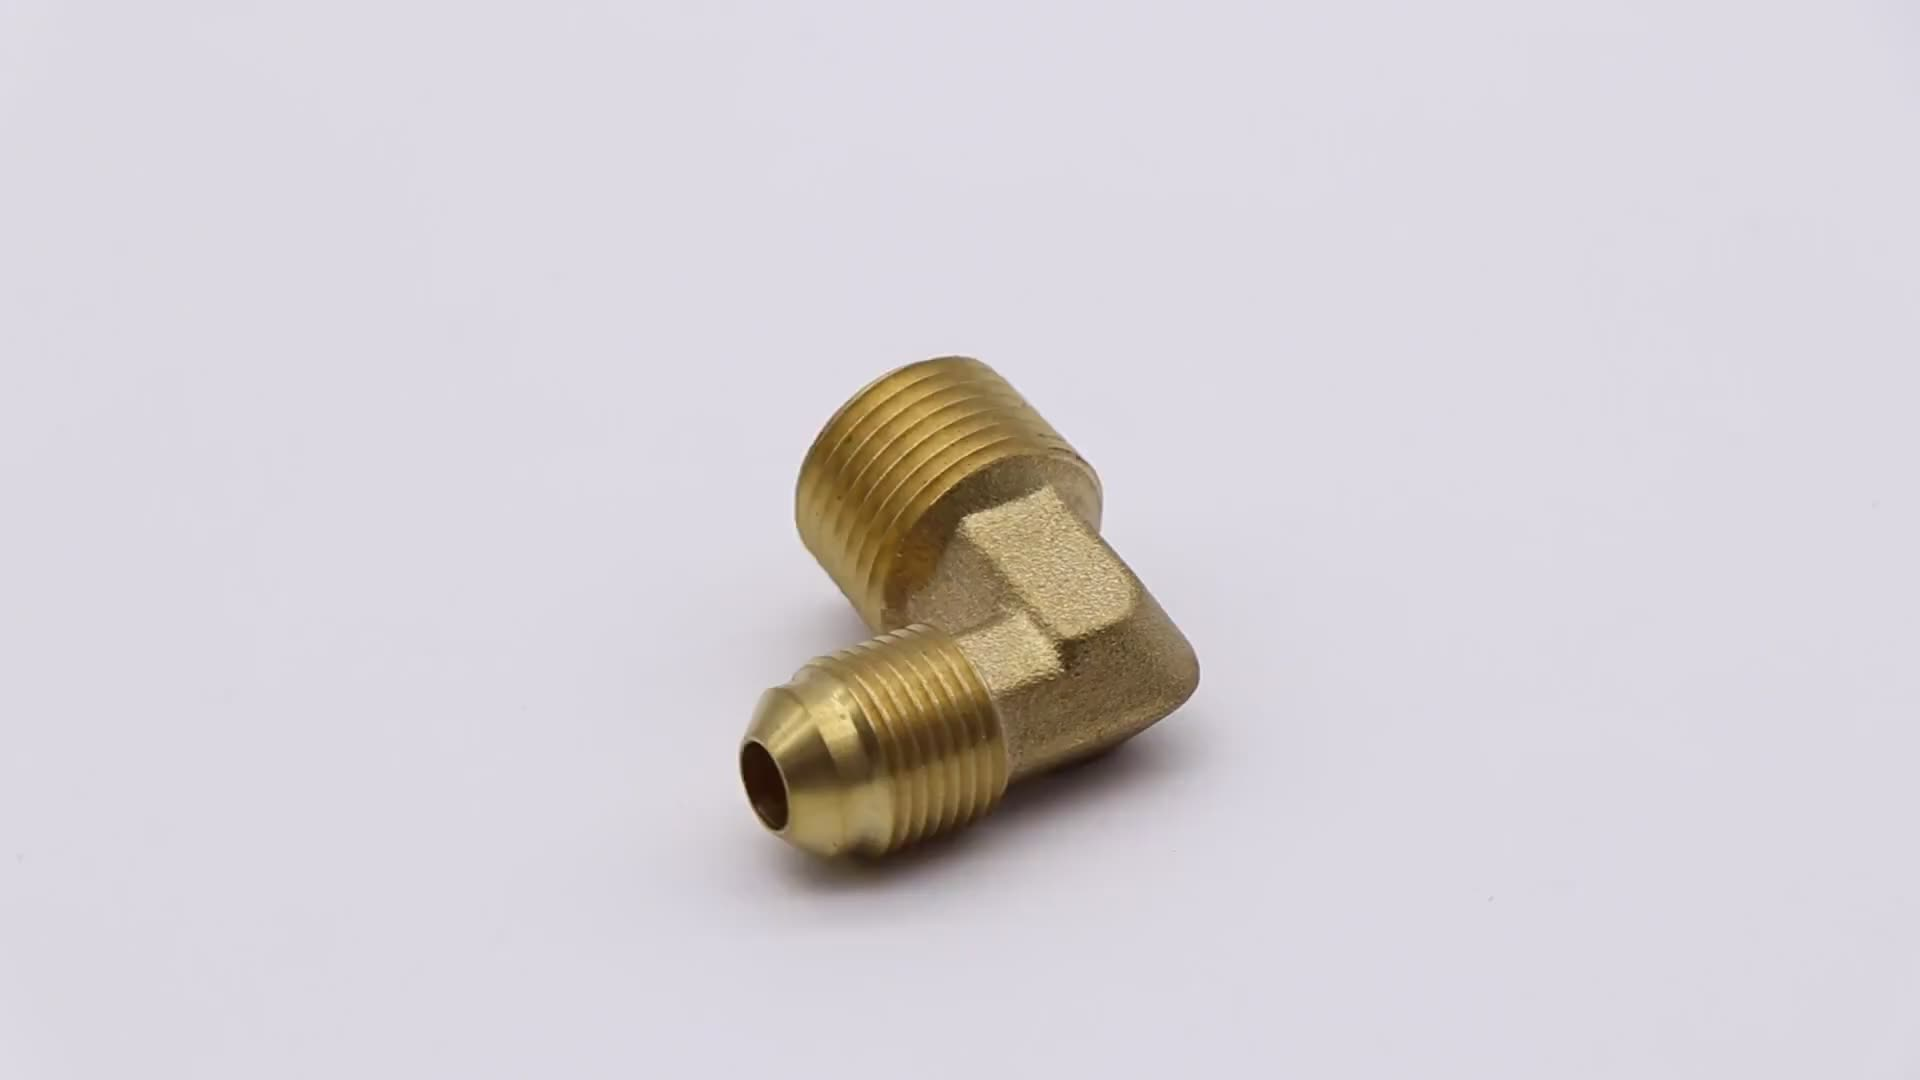 K519 male thread elbow brass flare fitting, gas pipe fitting elbow for gas